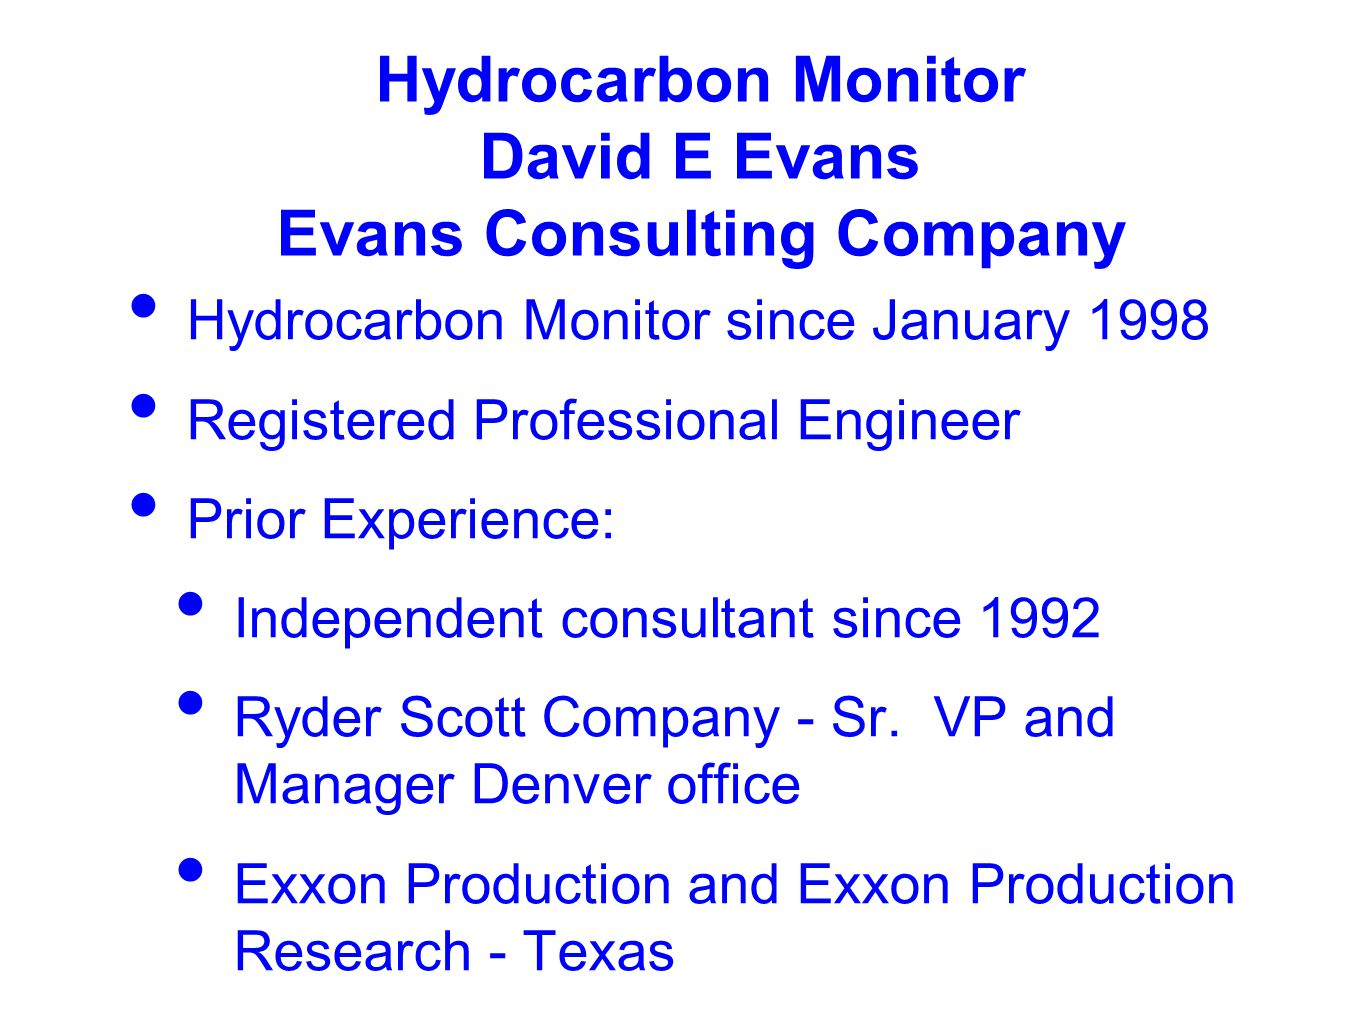 Hydrocarbon Monitor David E Evans Evans Consulting Company Hydrocarbon Monitor since January 1998 Registered Professional Engineer Prior Experience: Independent consultant since 1992 Ryder Scott Company - Sr.